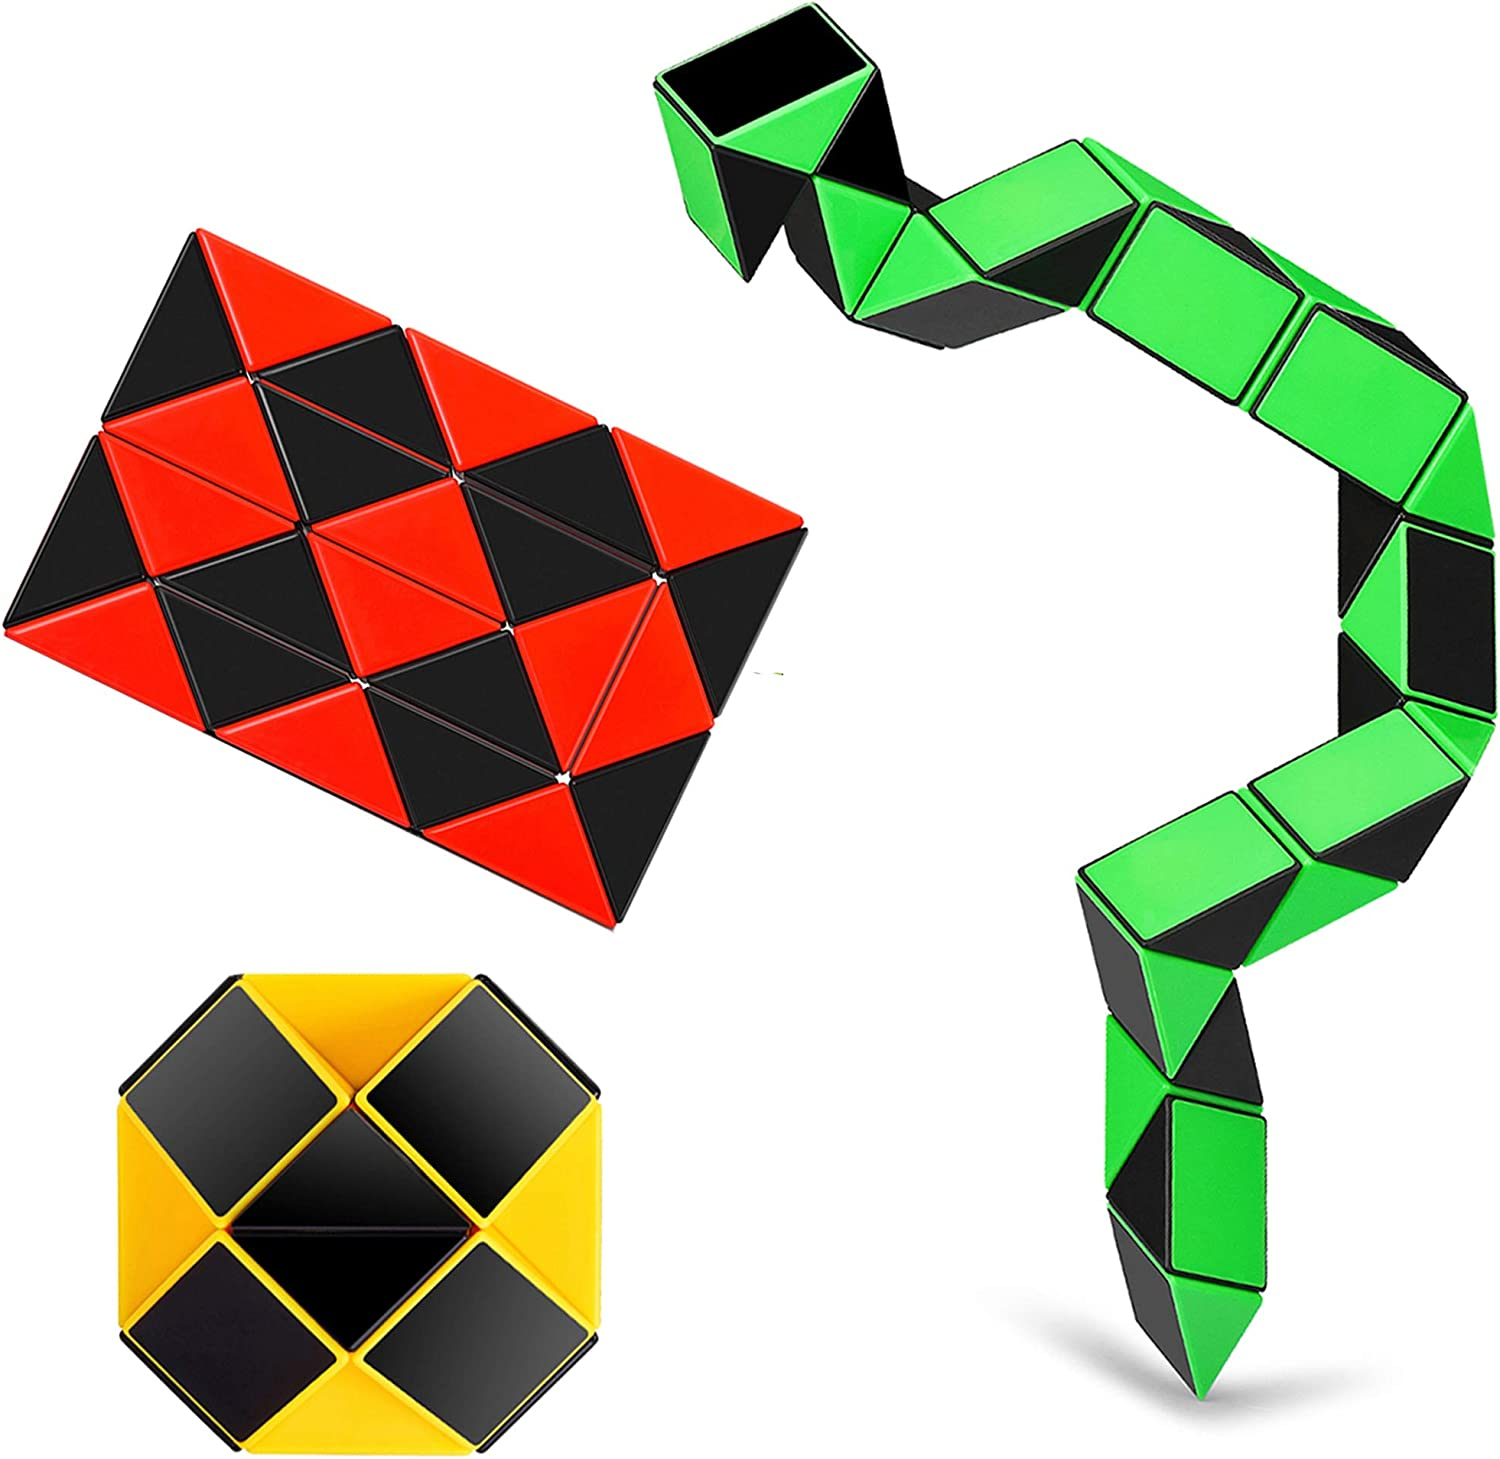 Ganowo 3PCS Big Size Fidget Snake Cube Magic Twist Puzzle Toys Birthday Party Favors Christmas Stocking Stuffers Goodie Bags Fillers for Kids Boys Teens Adults